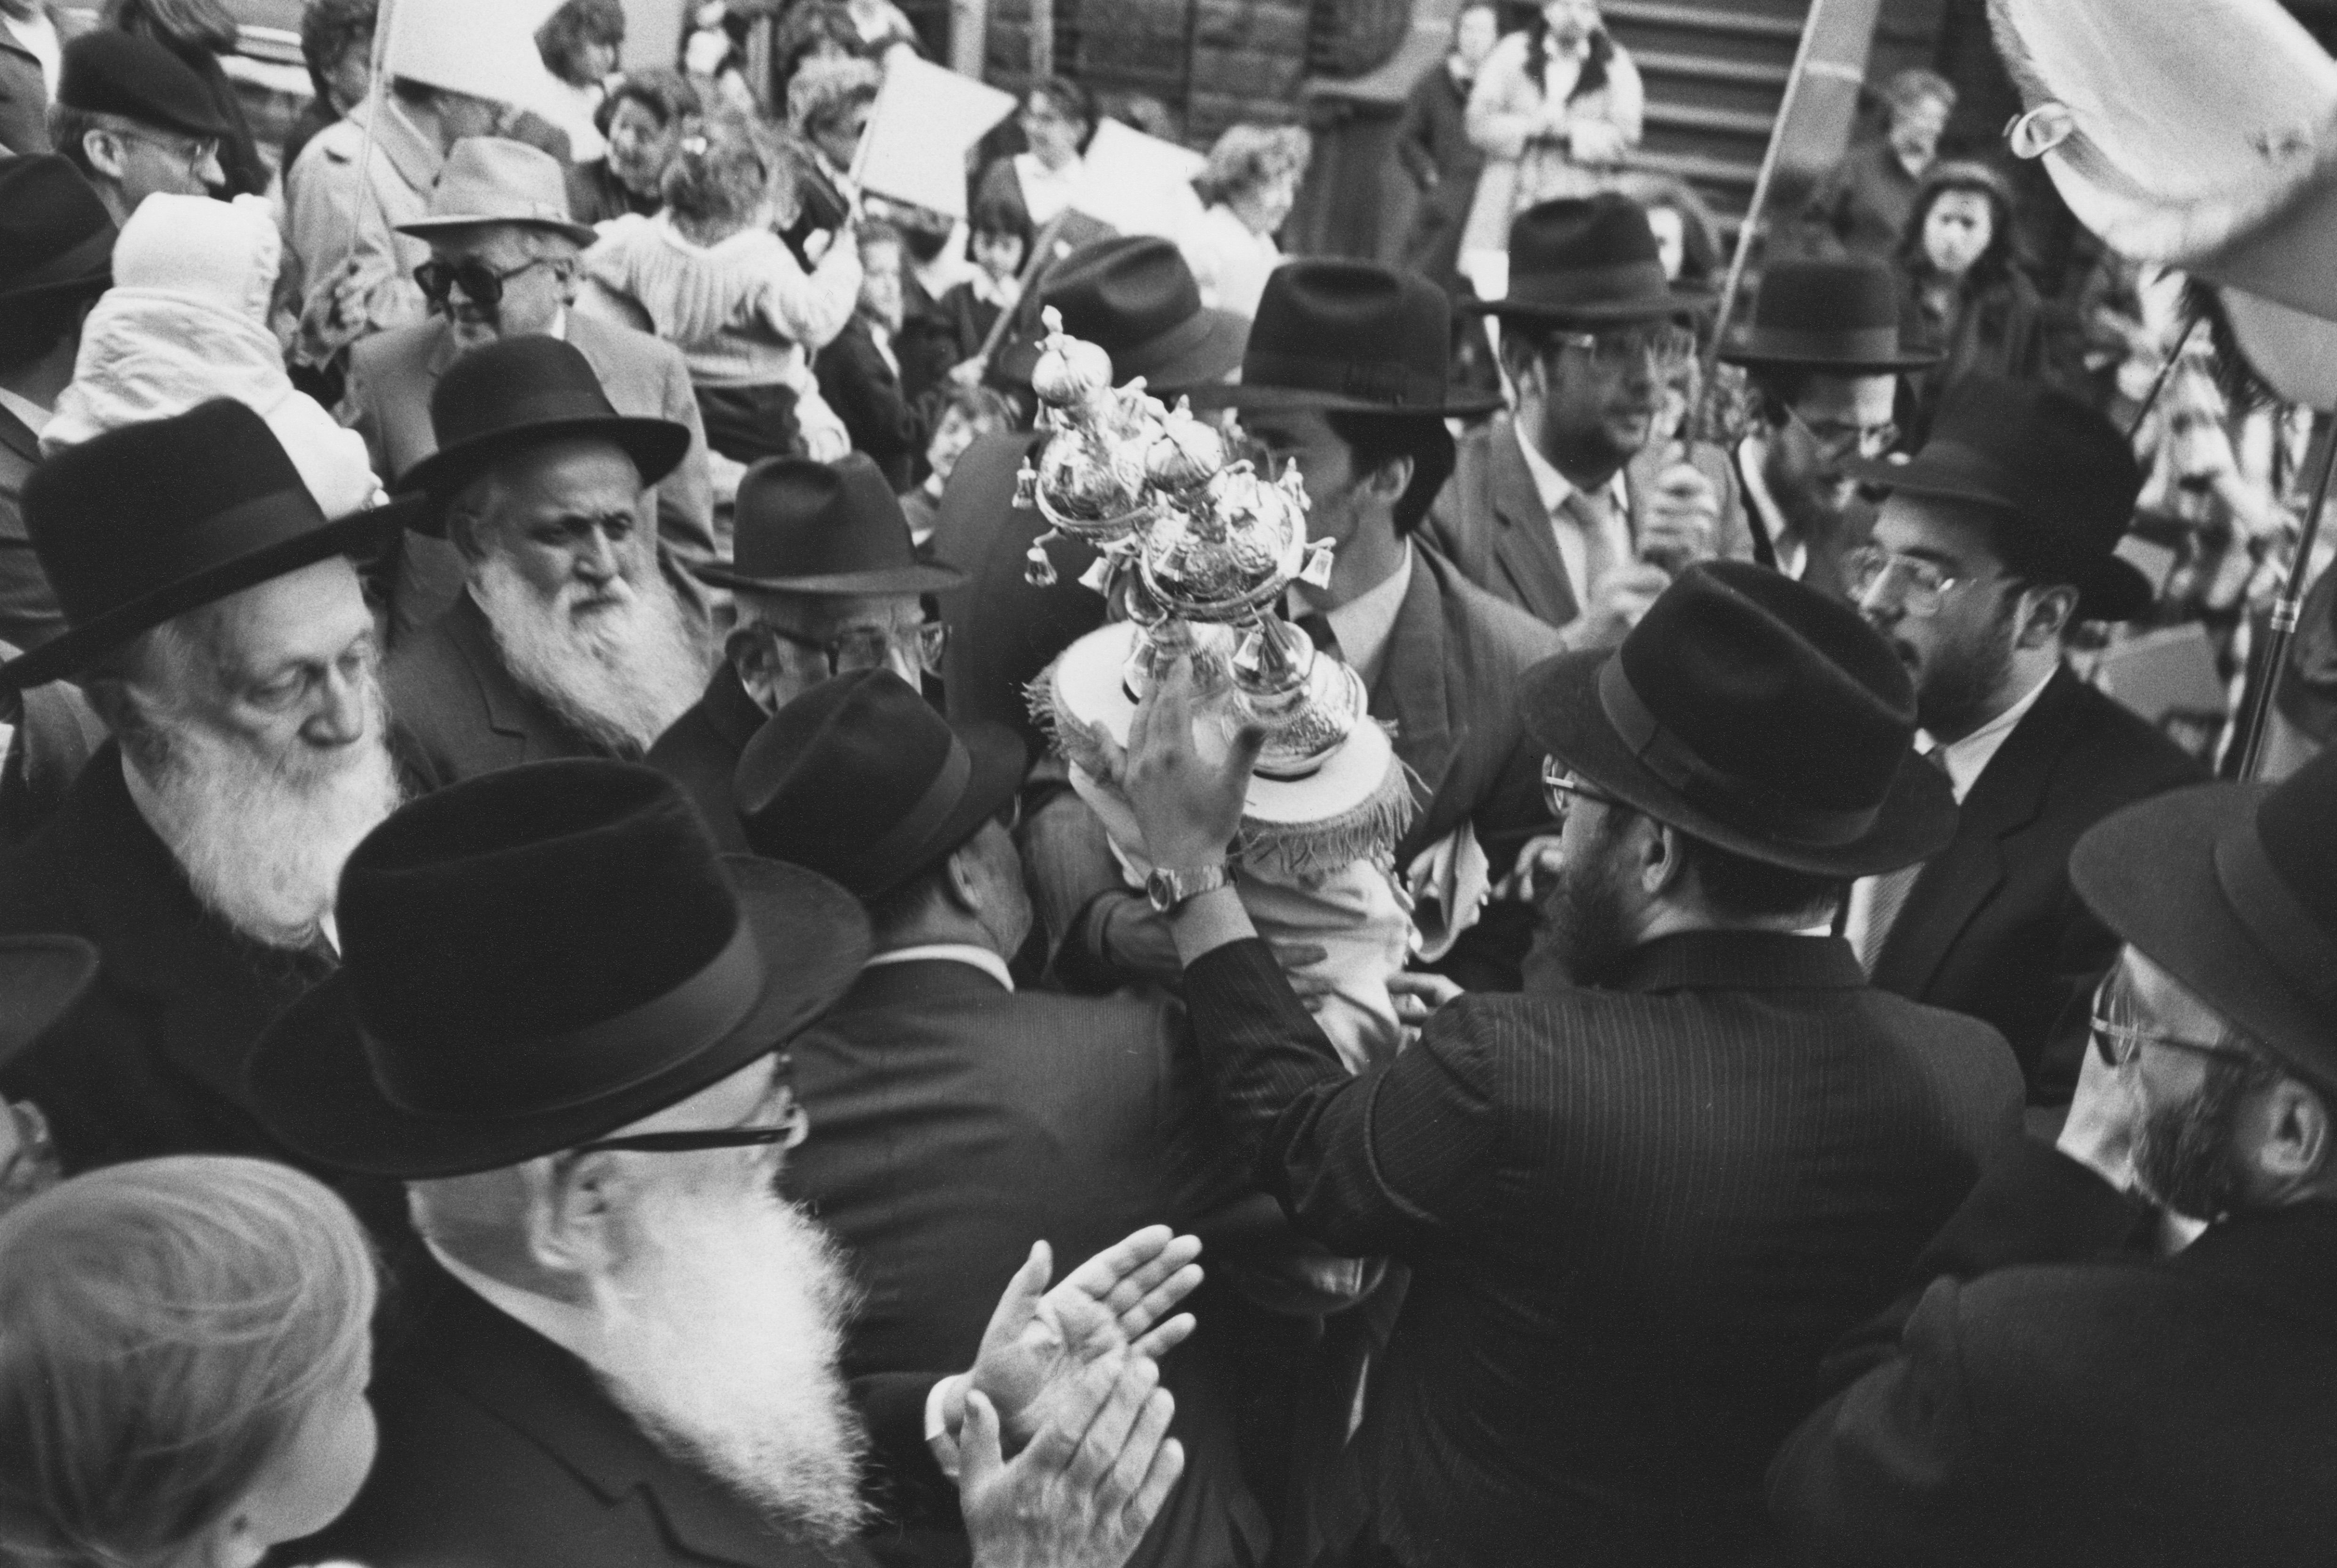 The dedication of a new Torah scroll in a synagogue on the Upper West Side, New York City, 24th April 1988. The Torah is adorned with finial bells.